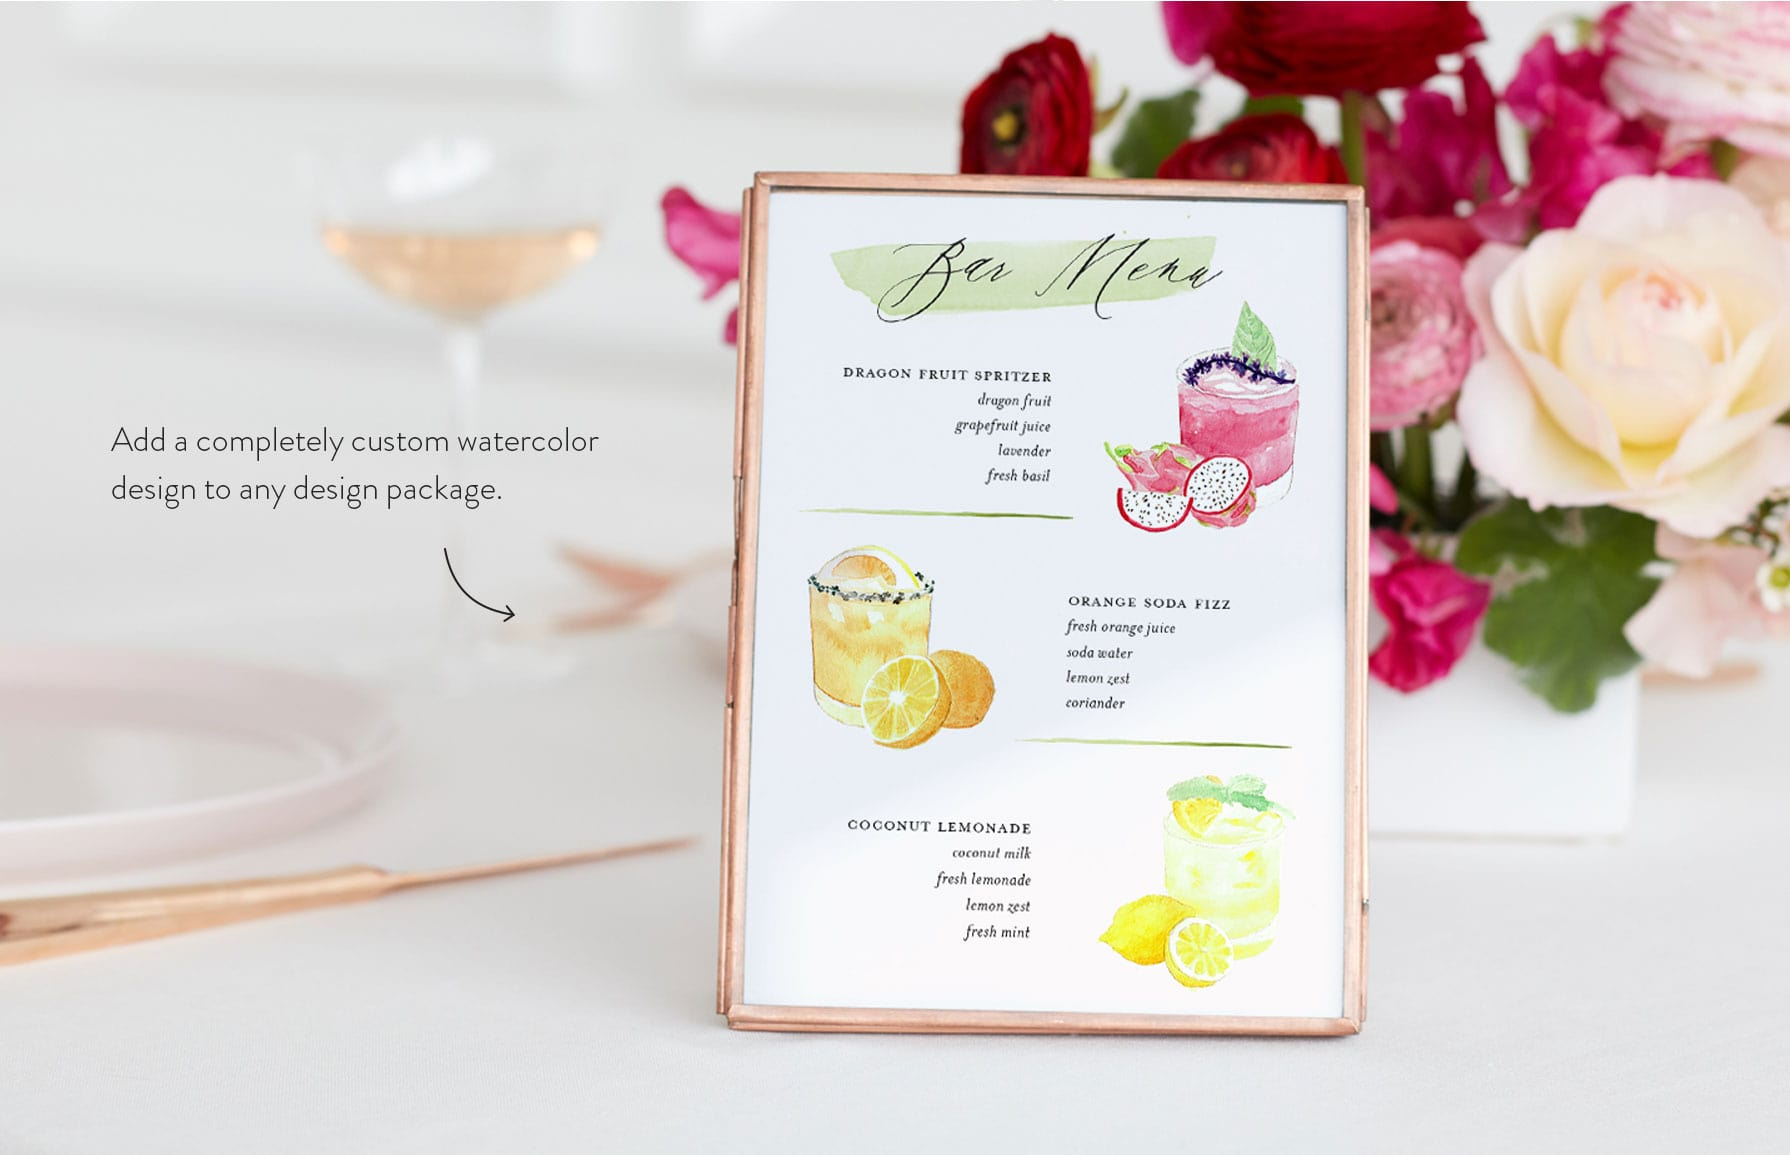 Add a completely custom watercolor design to any design package.